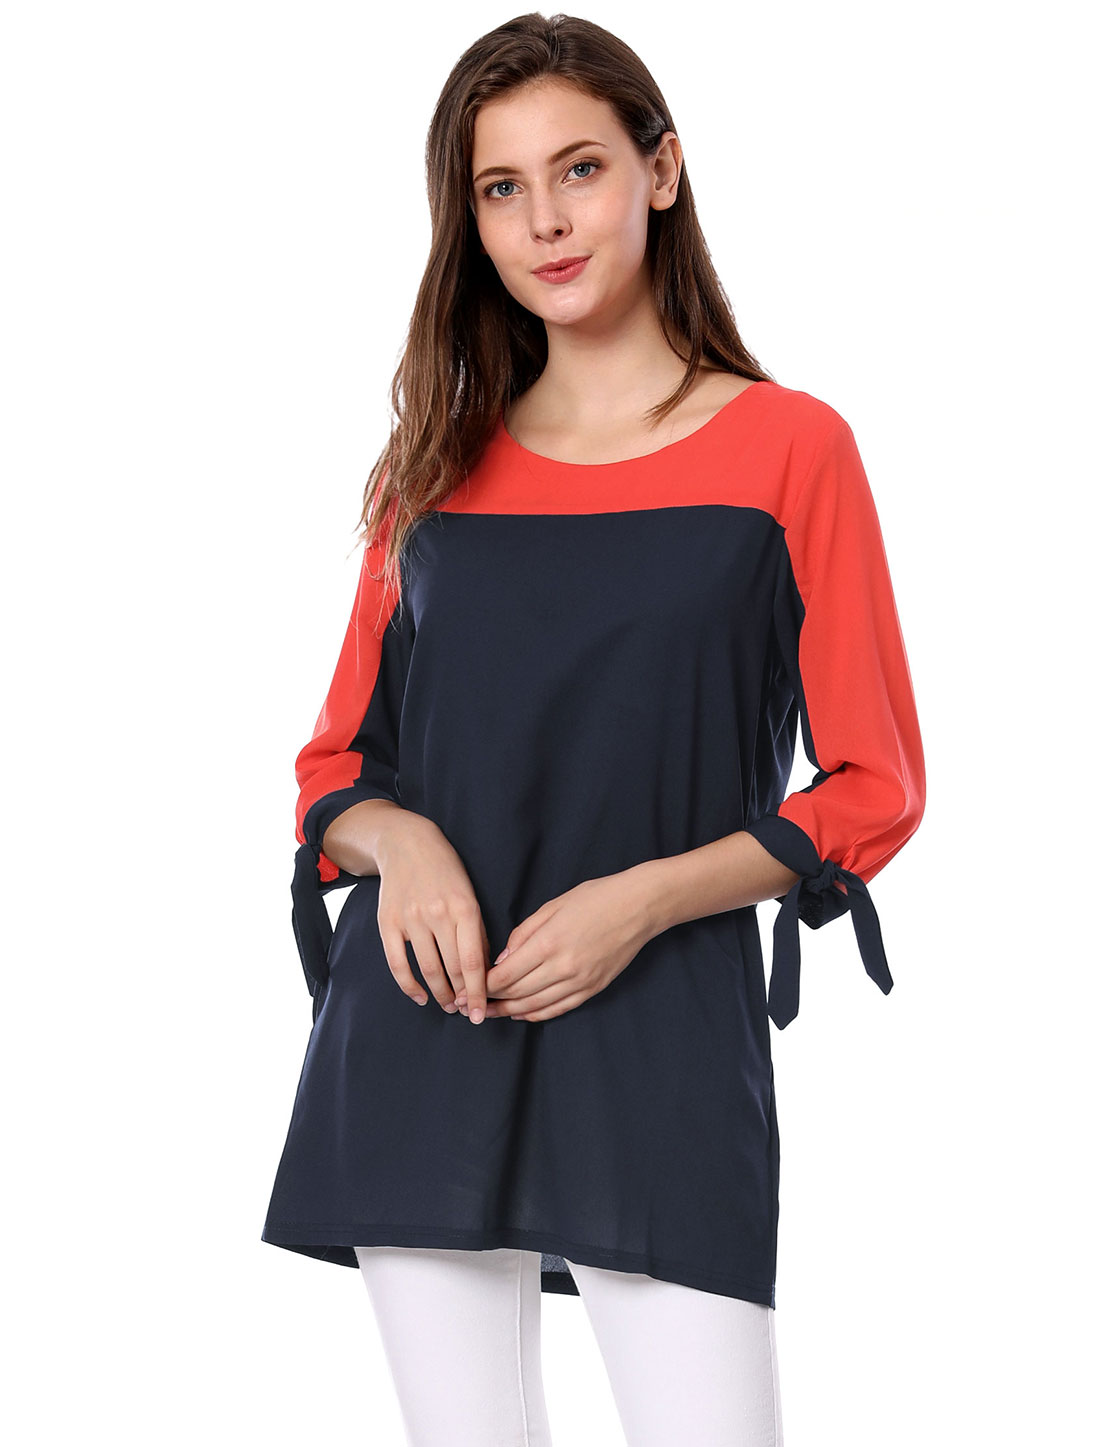 Woman Scoop Neck 3/4 Sleeve Color Blocking Oxford-Blue Tunic Top XS